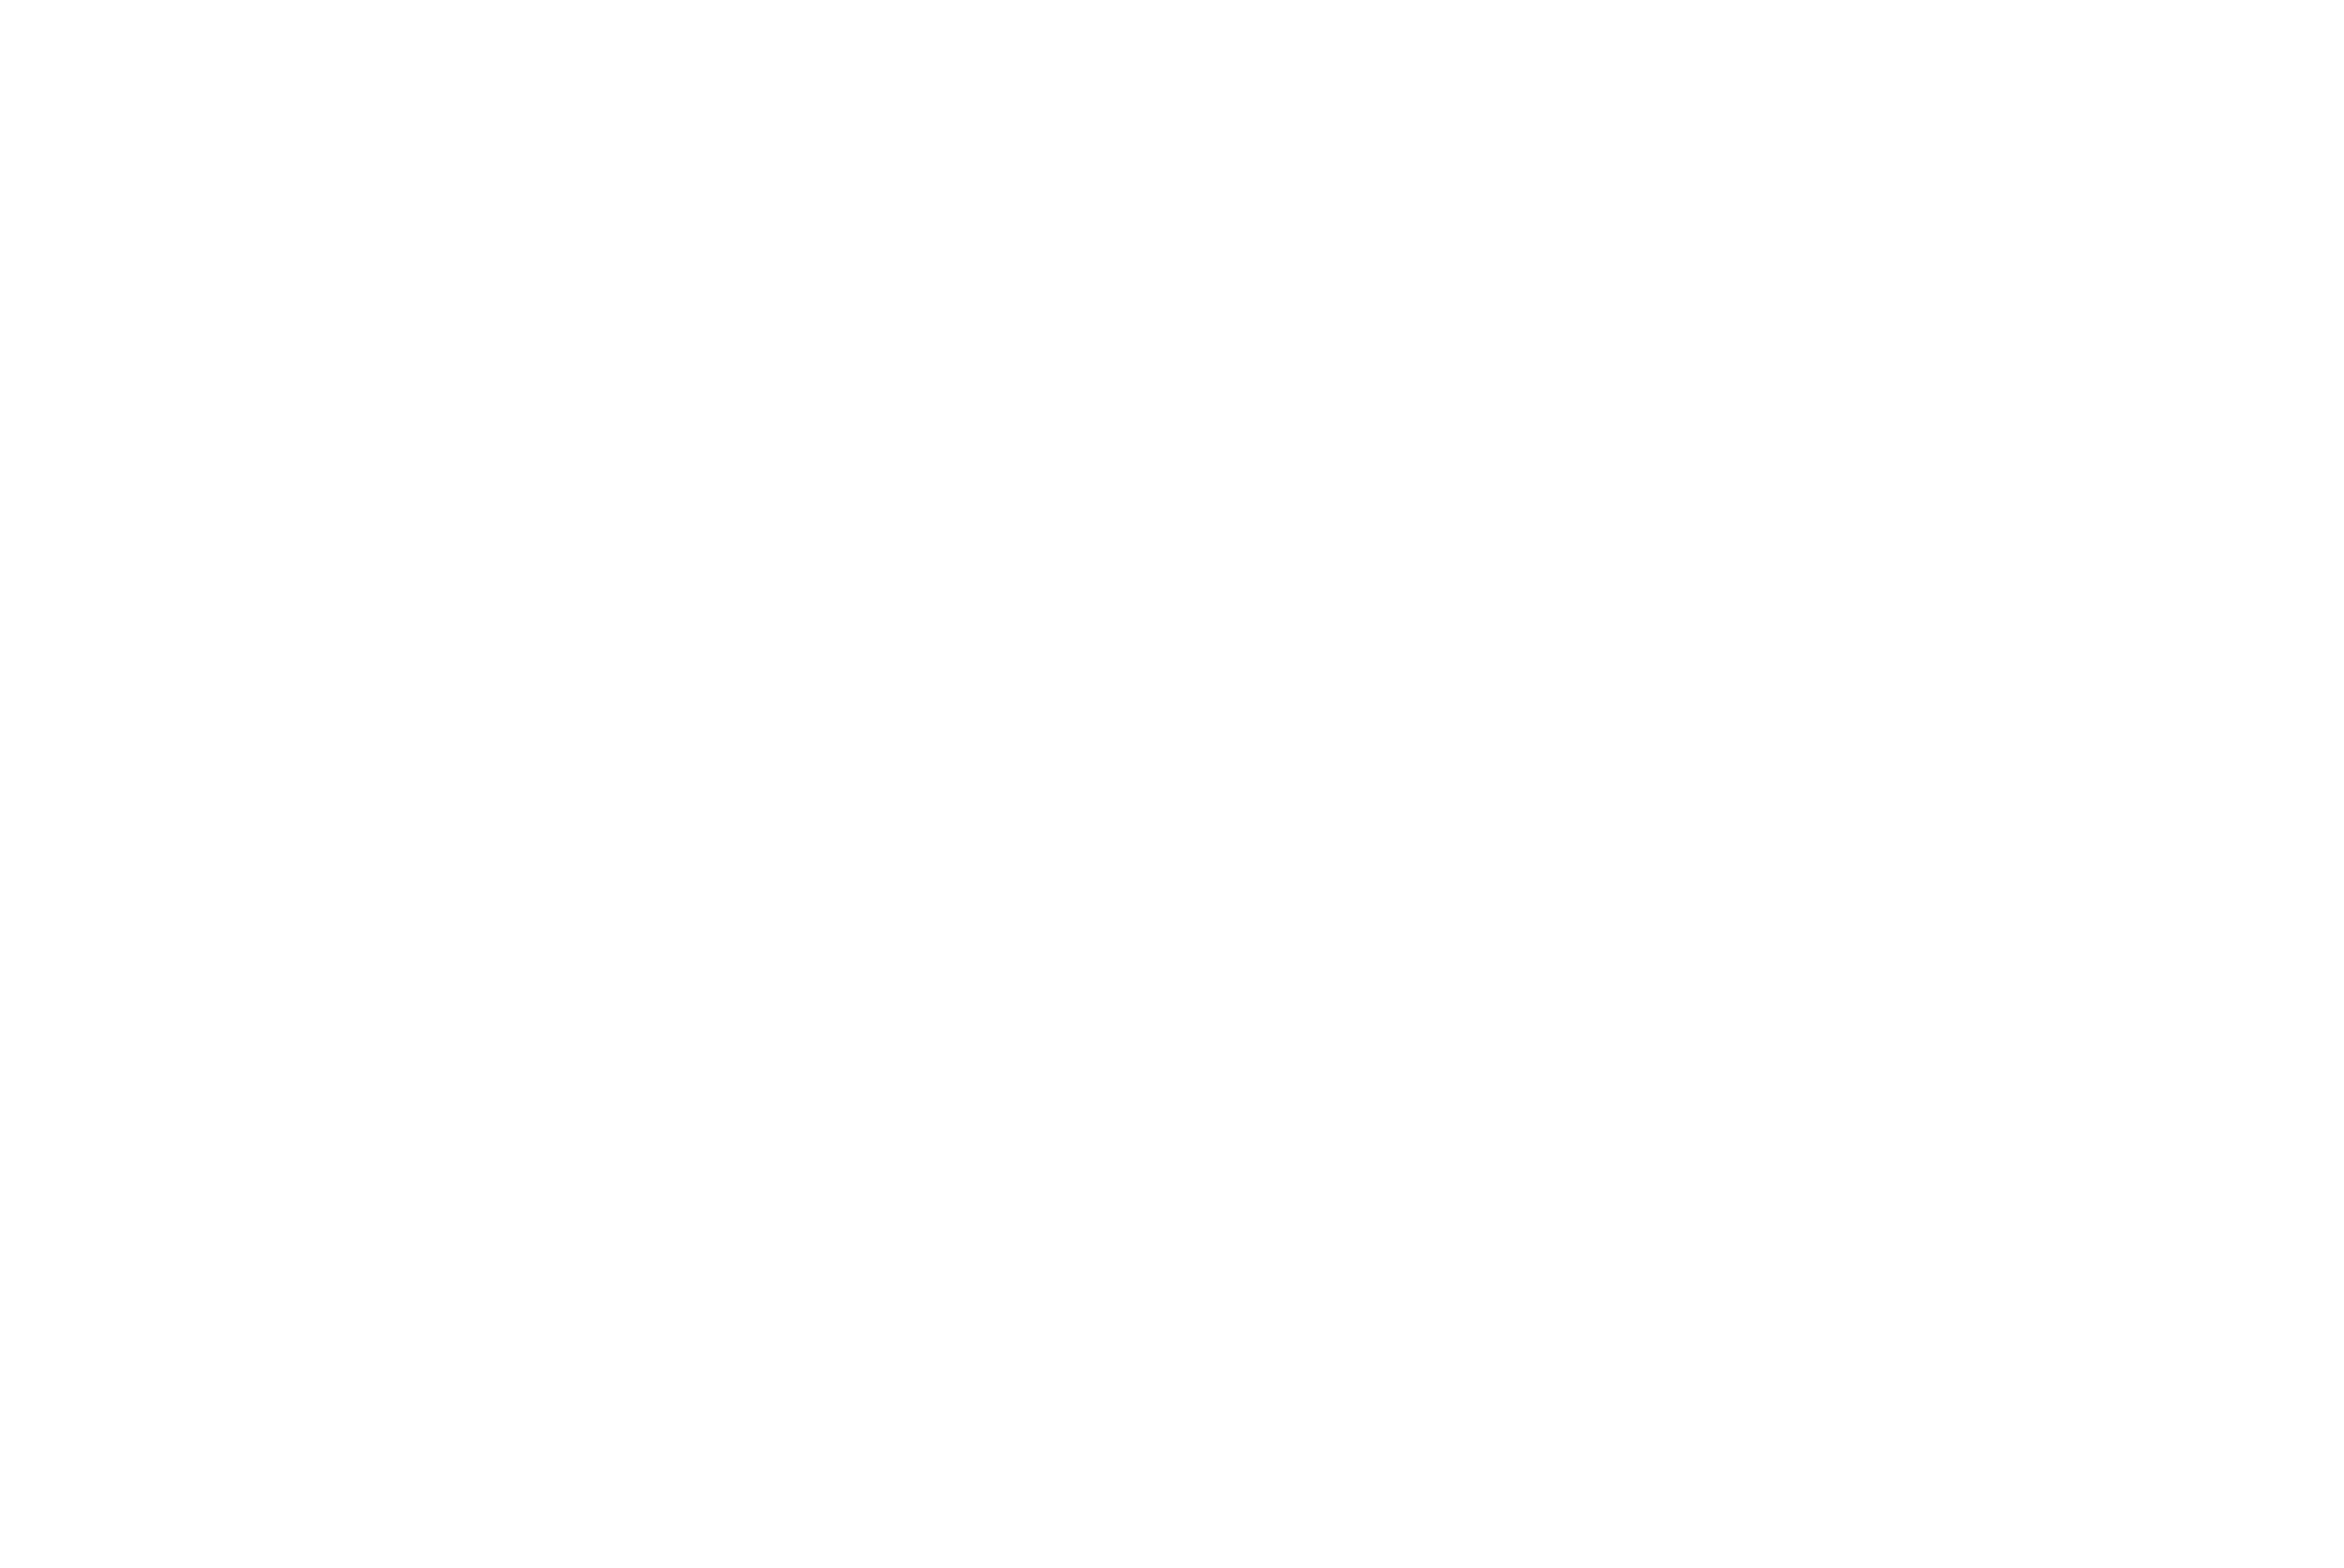 CyberCompetenceNetworklogo